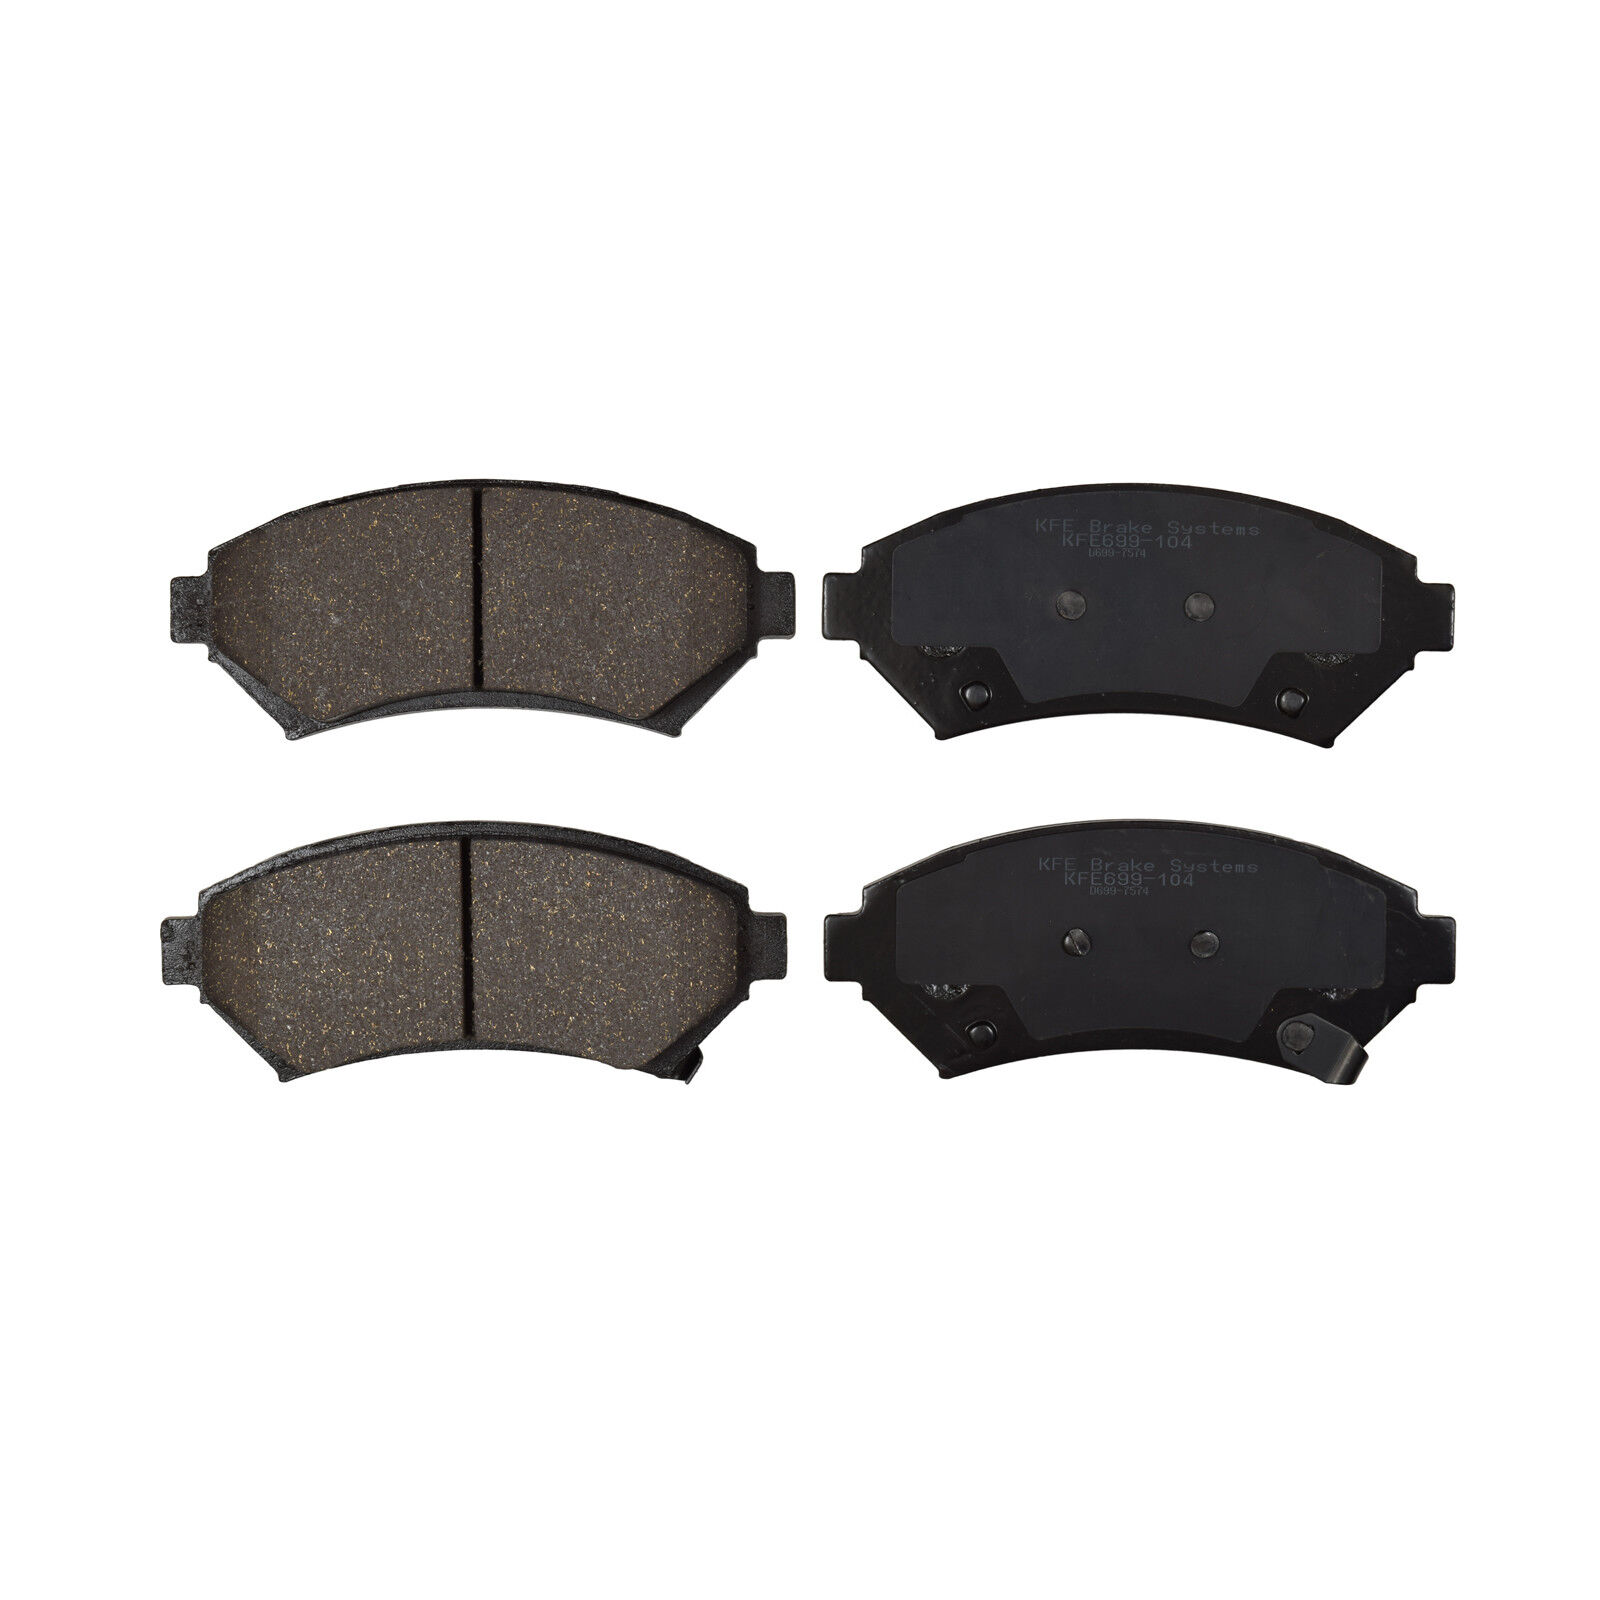 FRONT CERAMIC BRAKE PADS FOR OLDSMOBILE AURORA 1997 1998 1999 2000 2001 D699